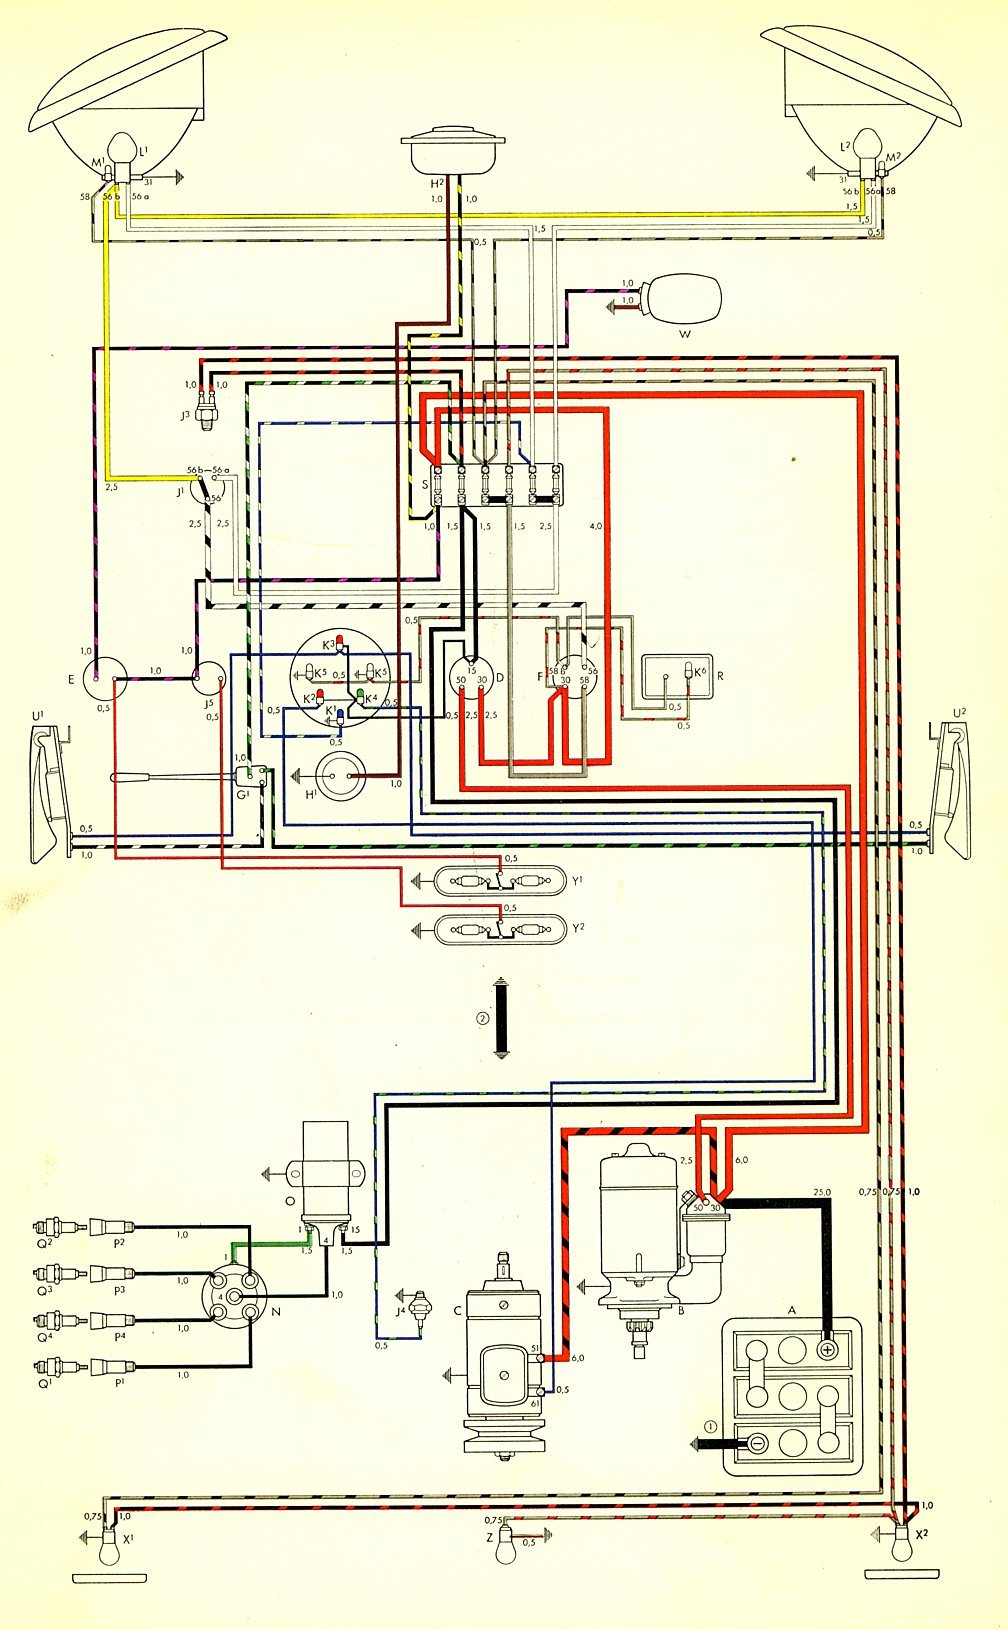 bus_59 thesamba com type 2 wiring diagrams 1960 vw bus wiring diagram at fashall.co